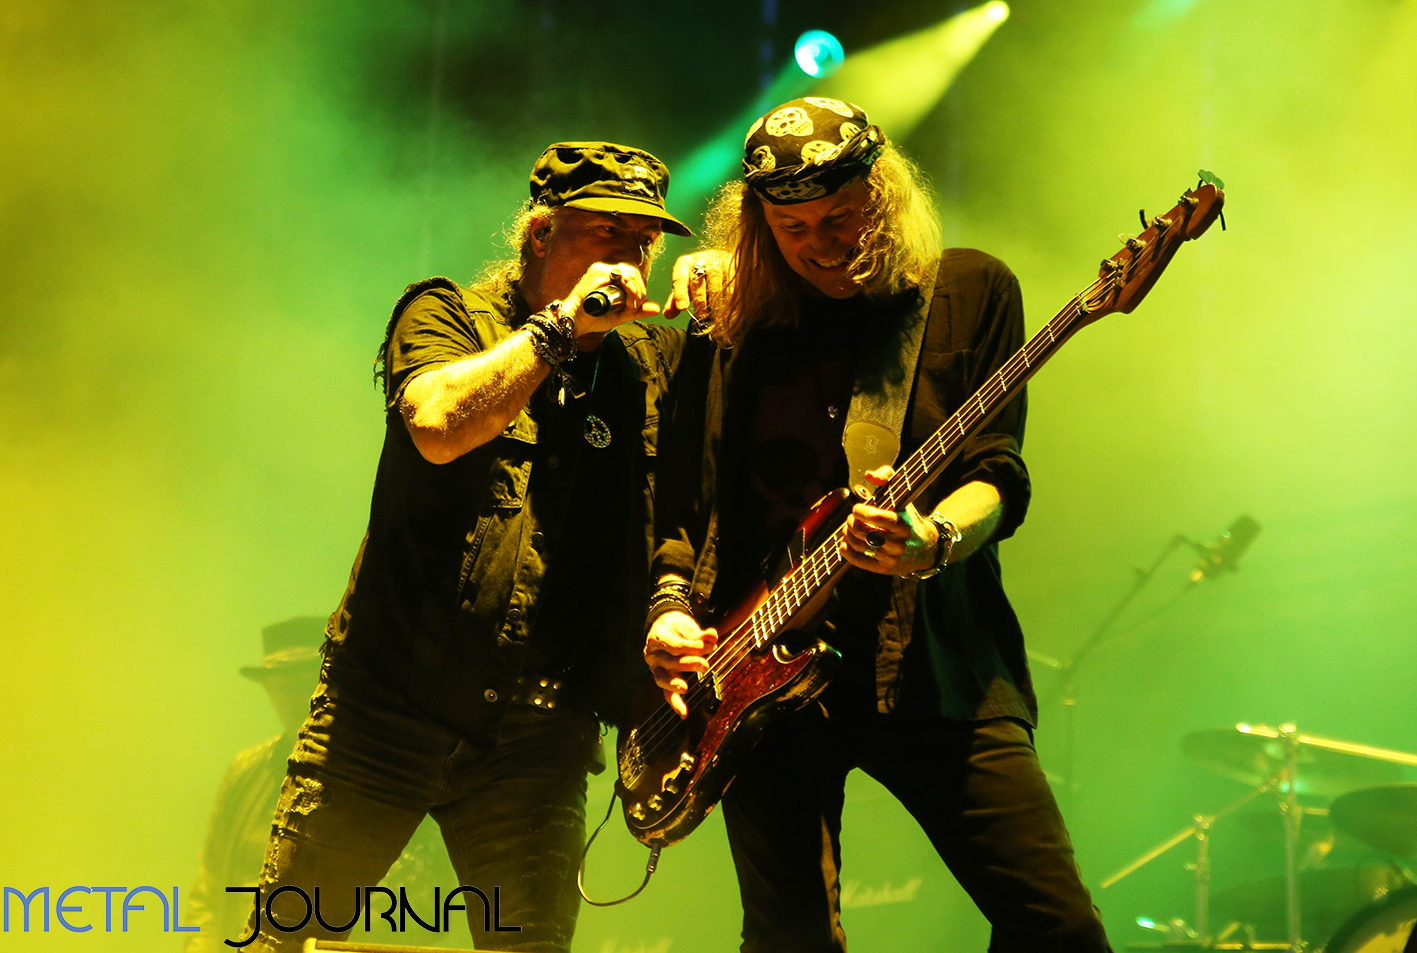 krokus - metal journal rock fest barcelona 2019 pic 5